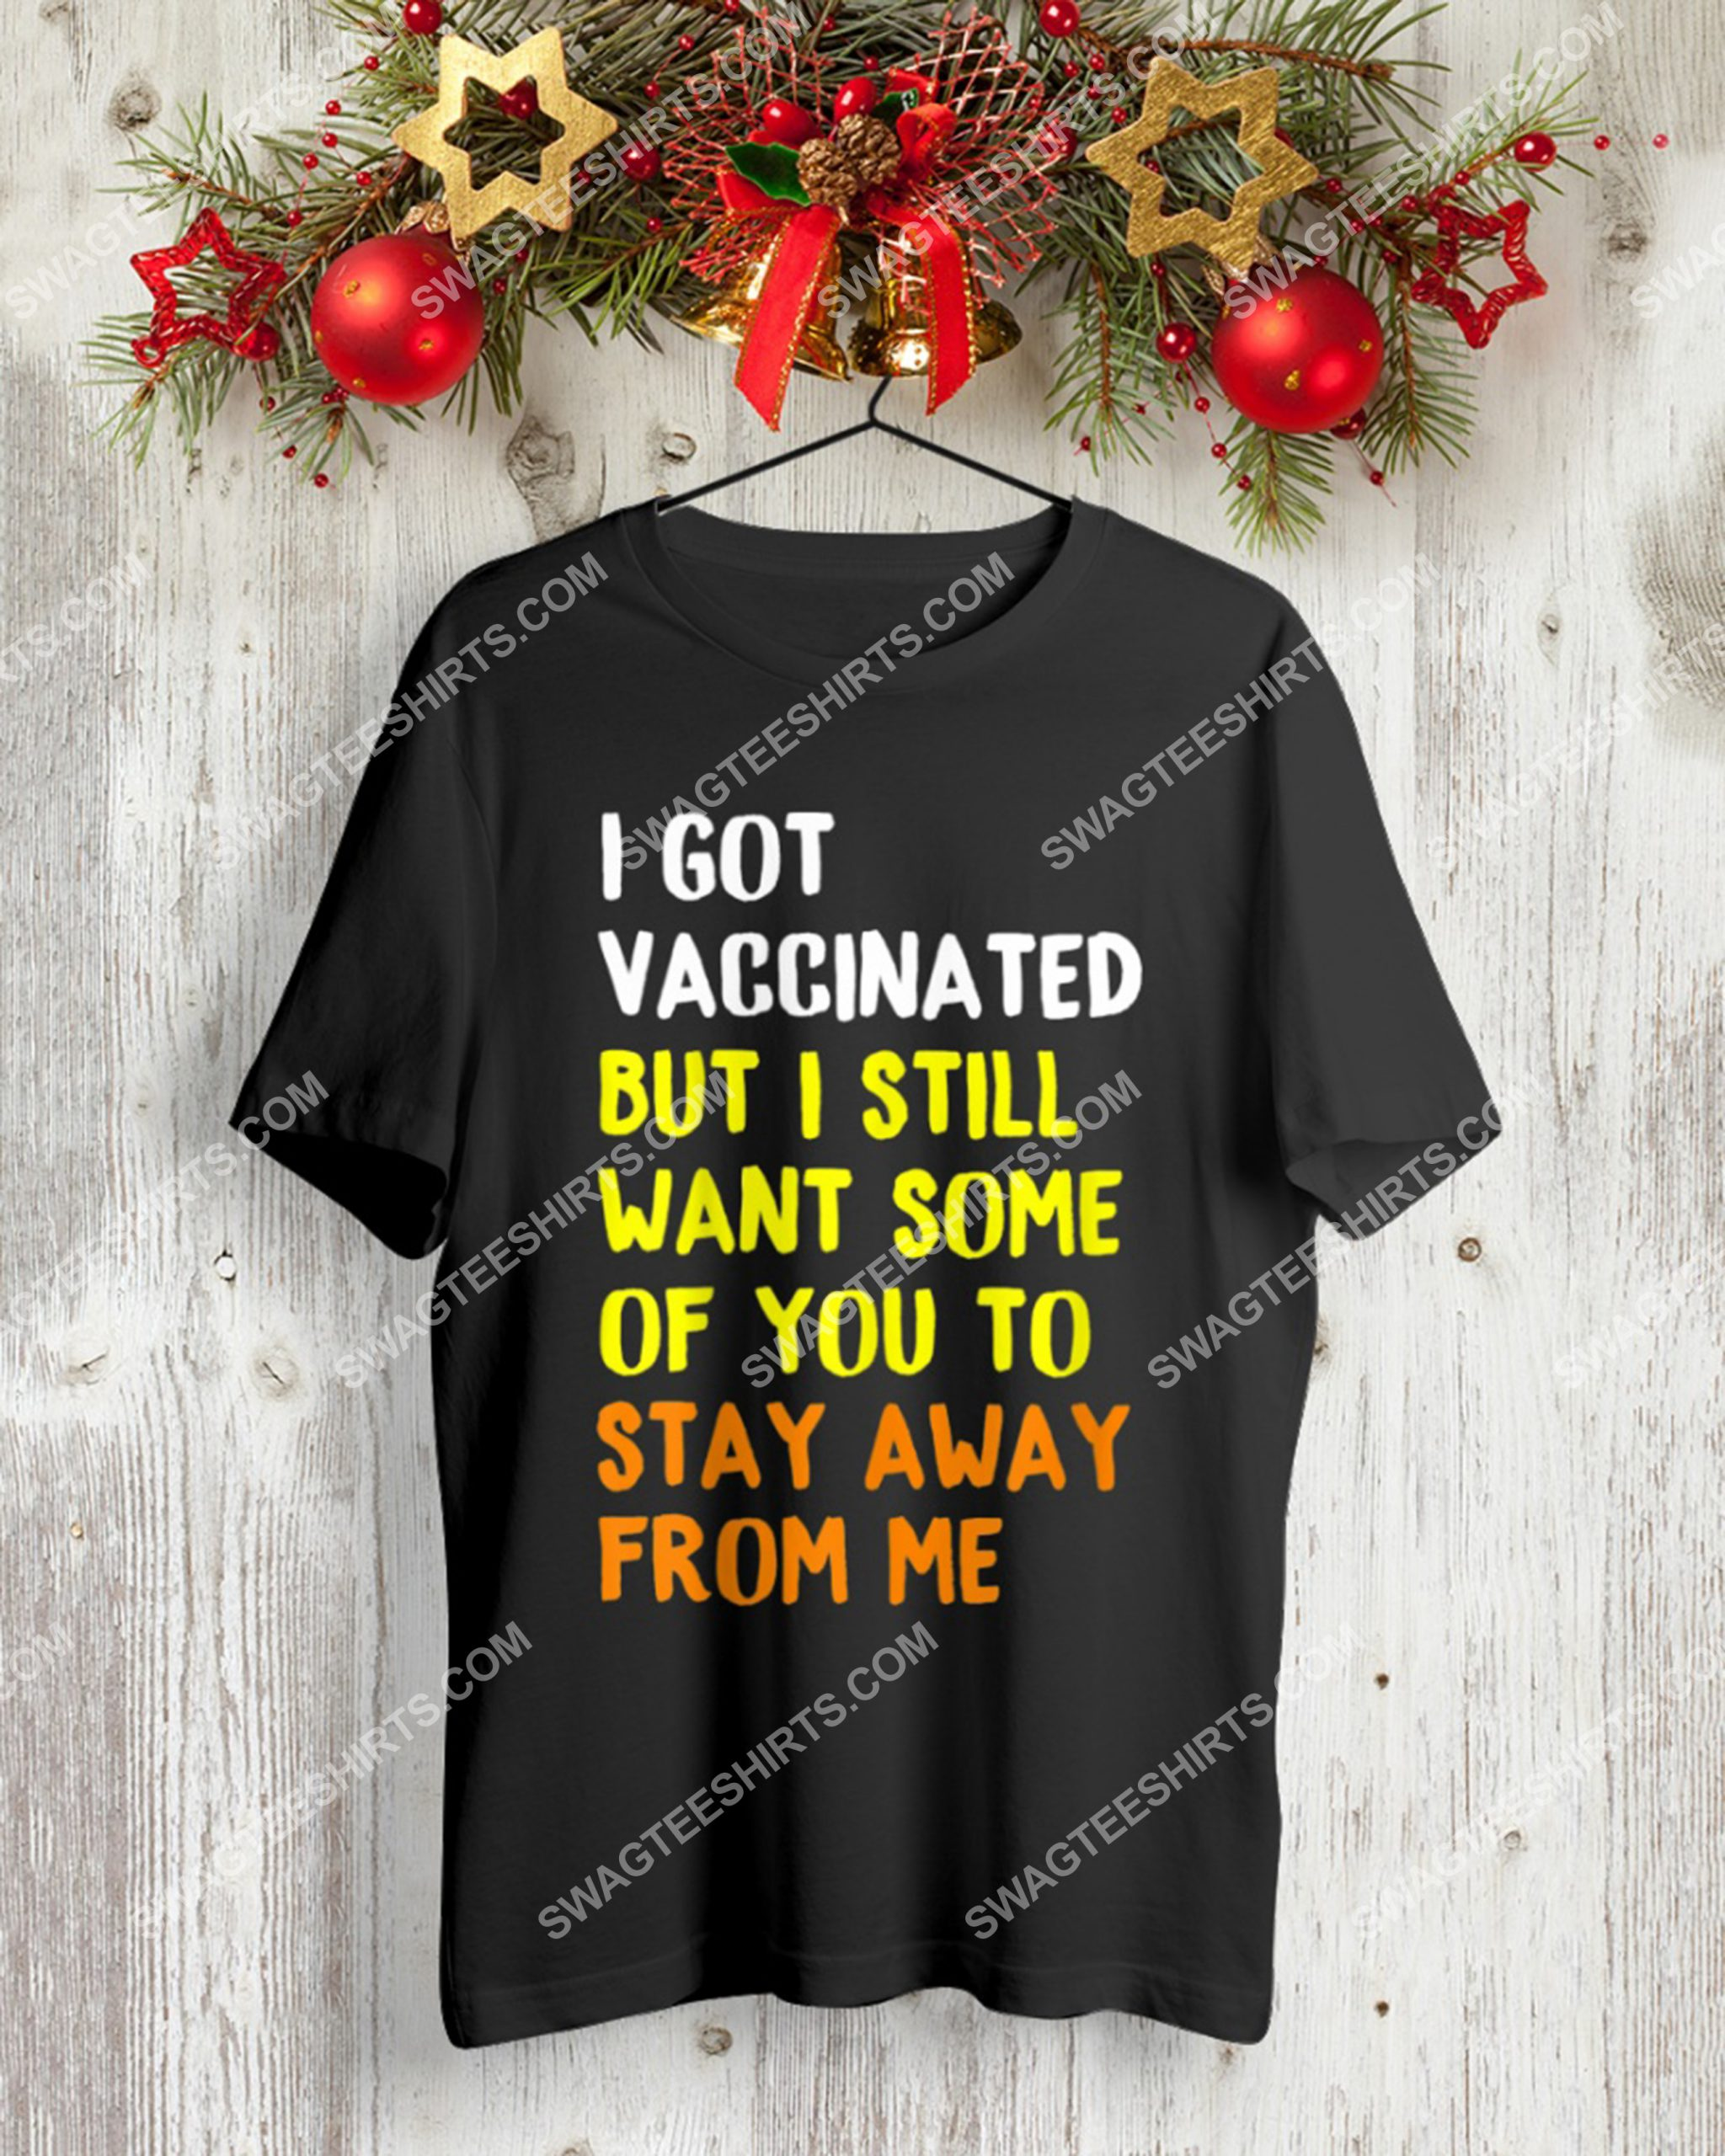 i got vaccinated but i still want some of you to stay away from me shirt 3(1) - Copy